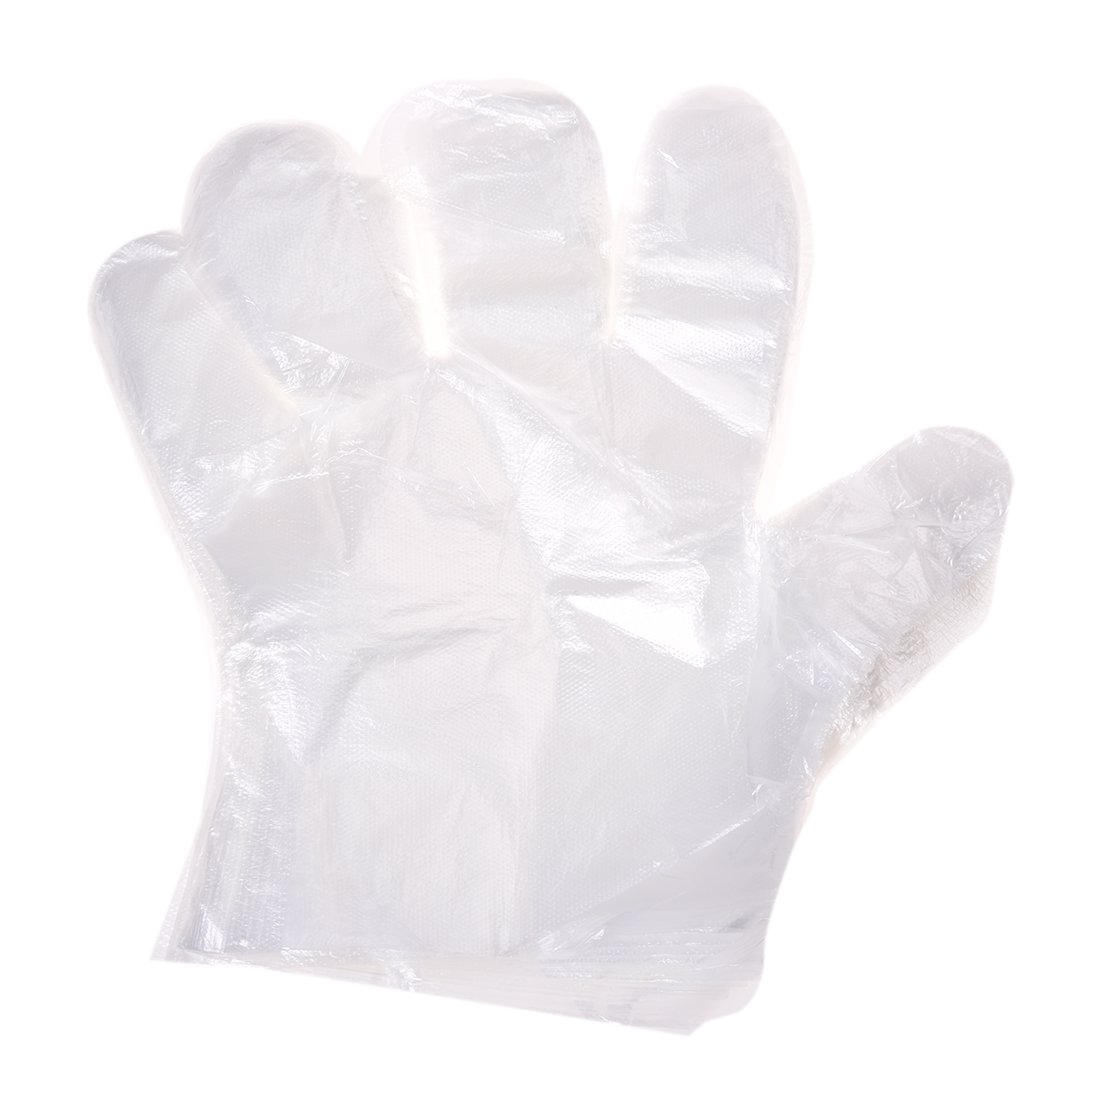 Xigeapg 50 Pair Food Service Hand Protective Plastic Disposable Gloves Clear